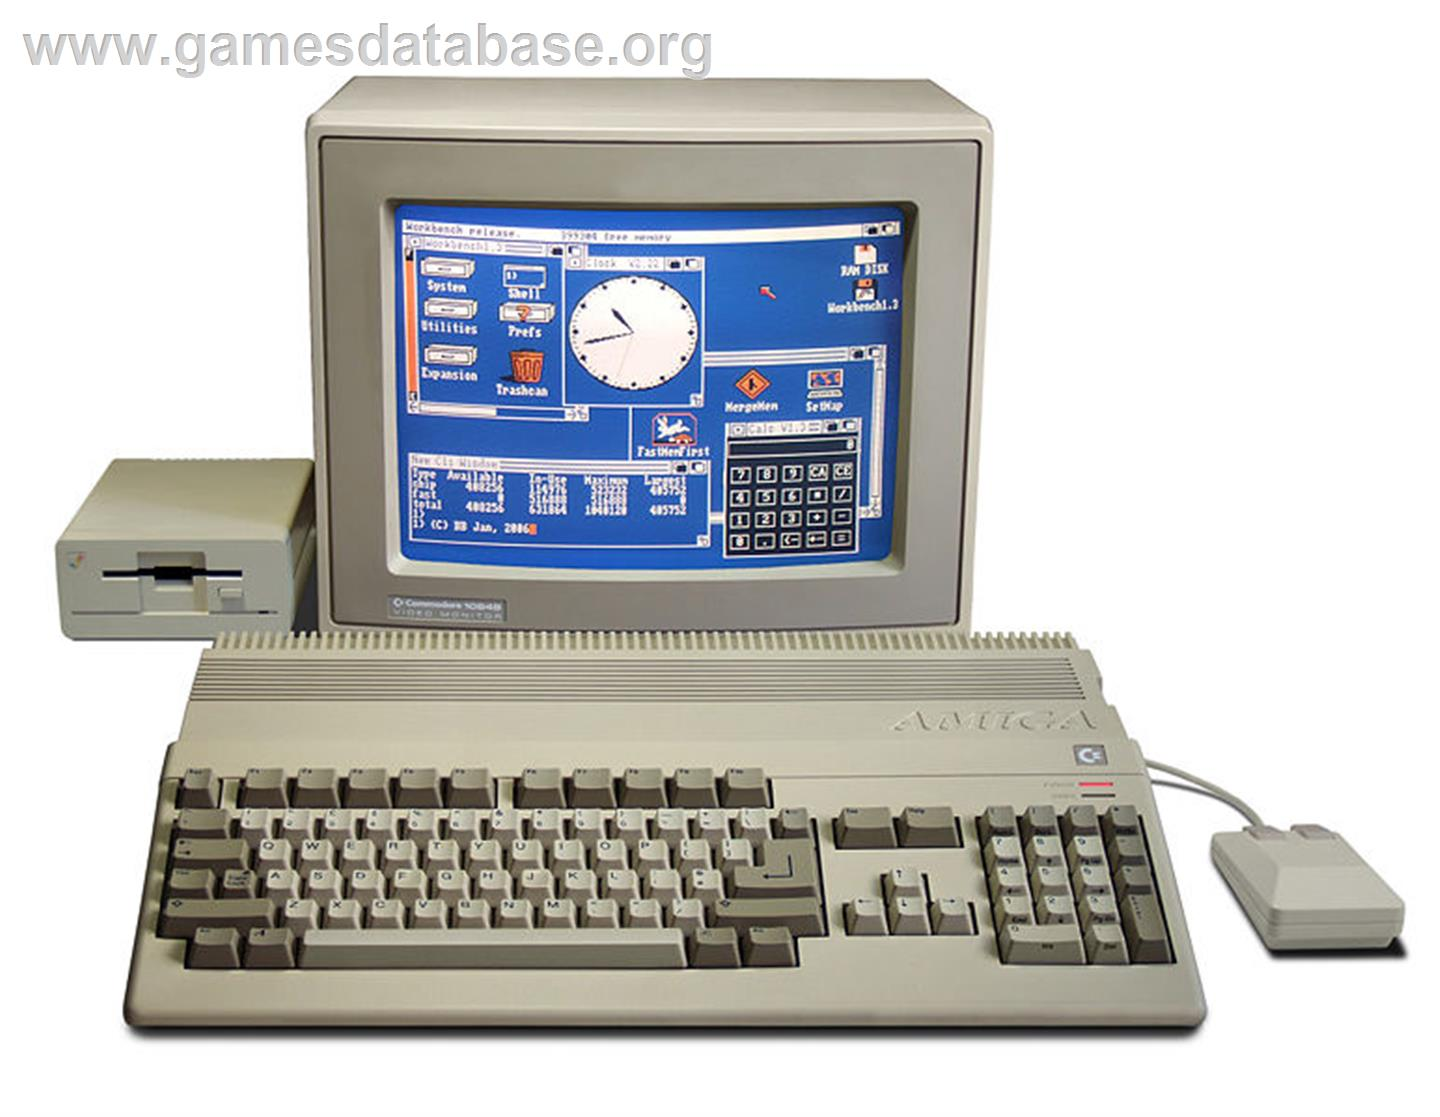 about commodore amiga games database